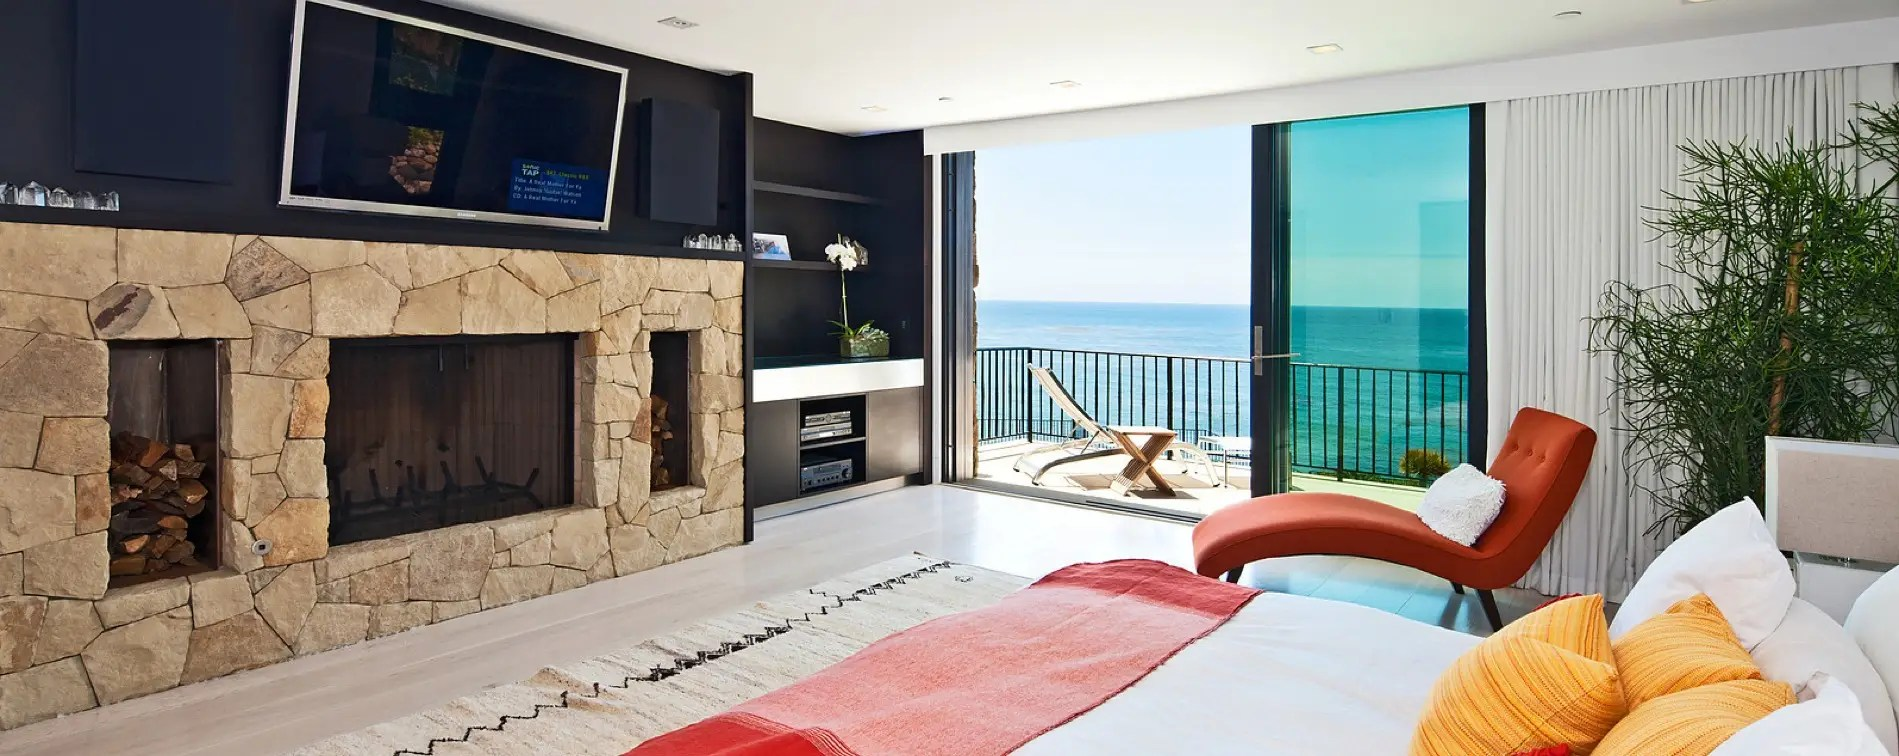 We love the fireplace and the placement of the flat screen TV above it.